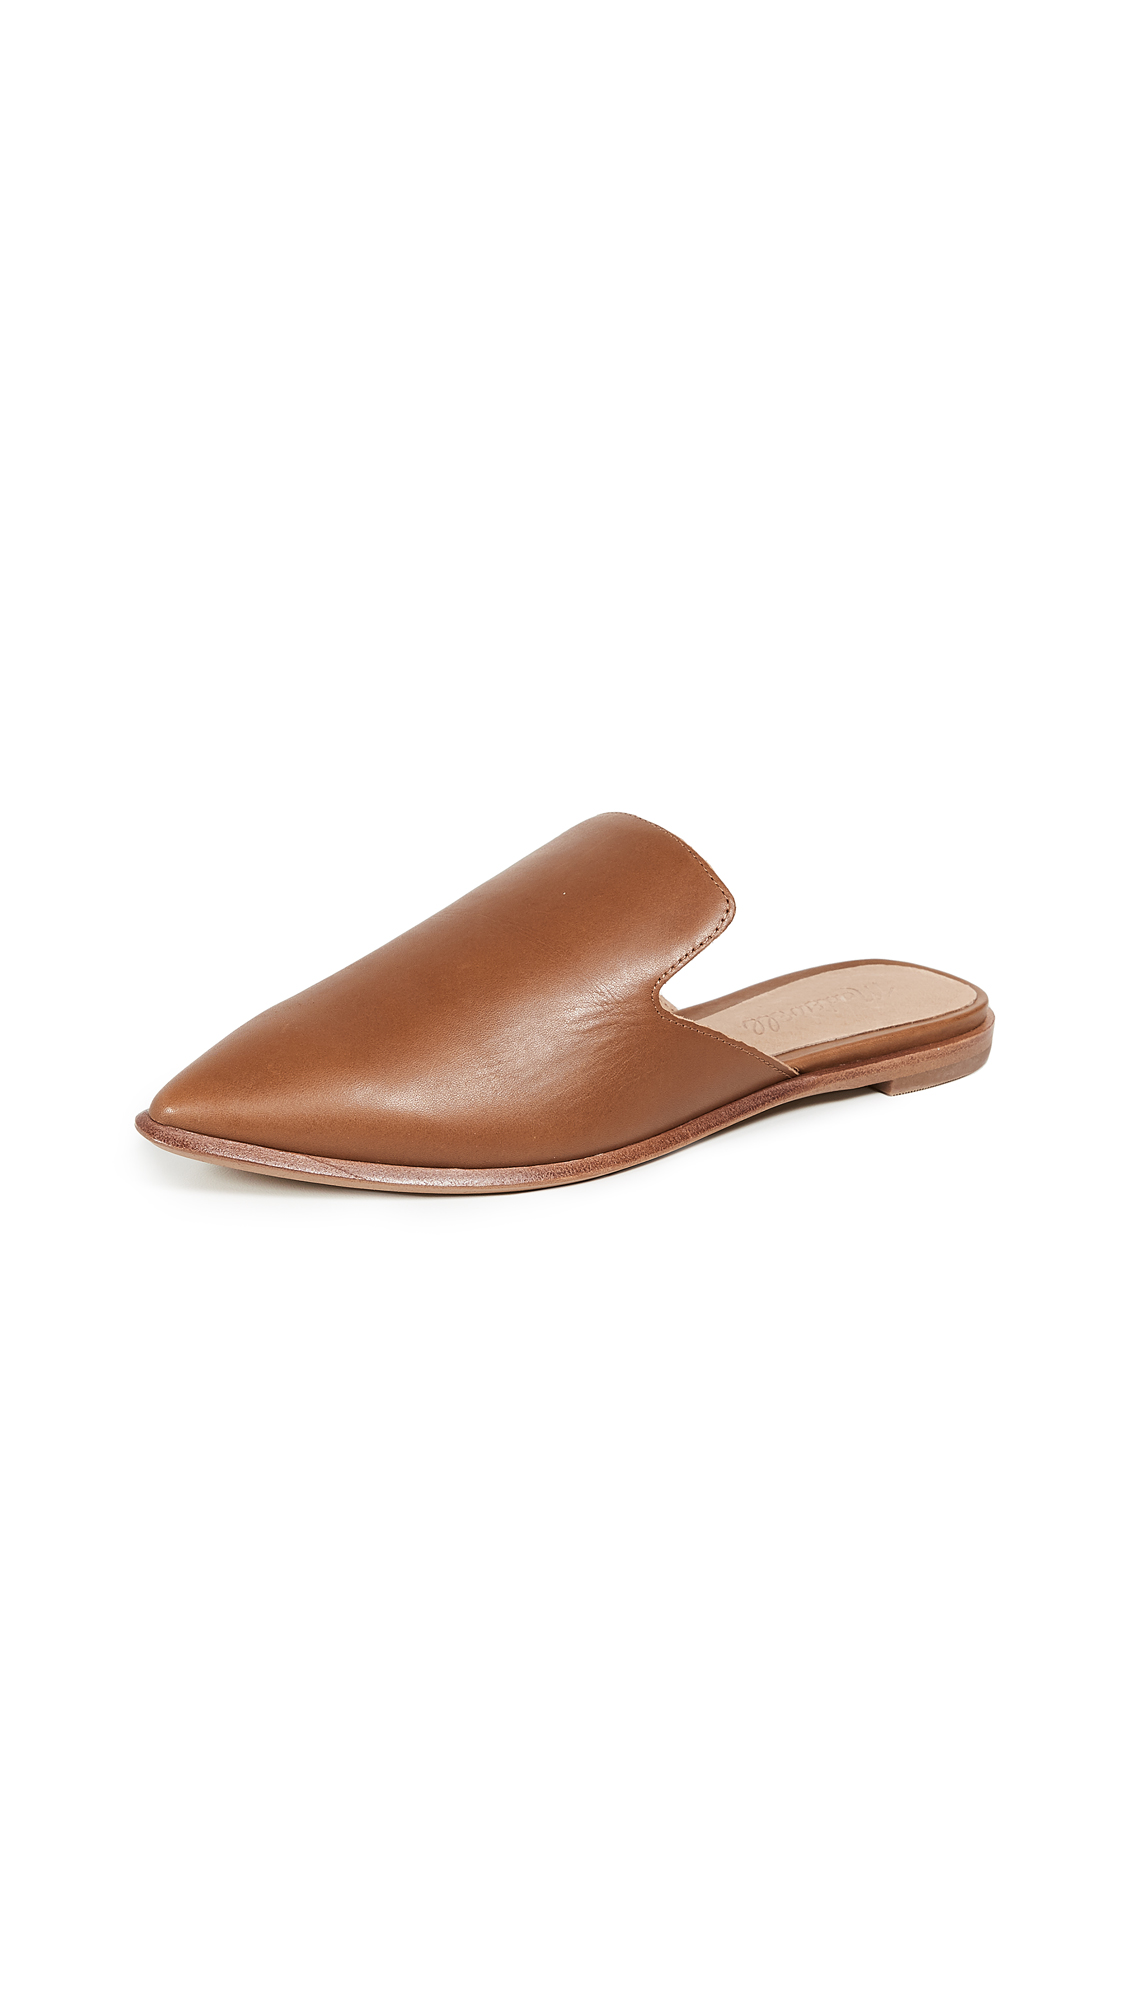 Madewell Gemma Mules - English Saddle